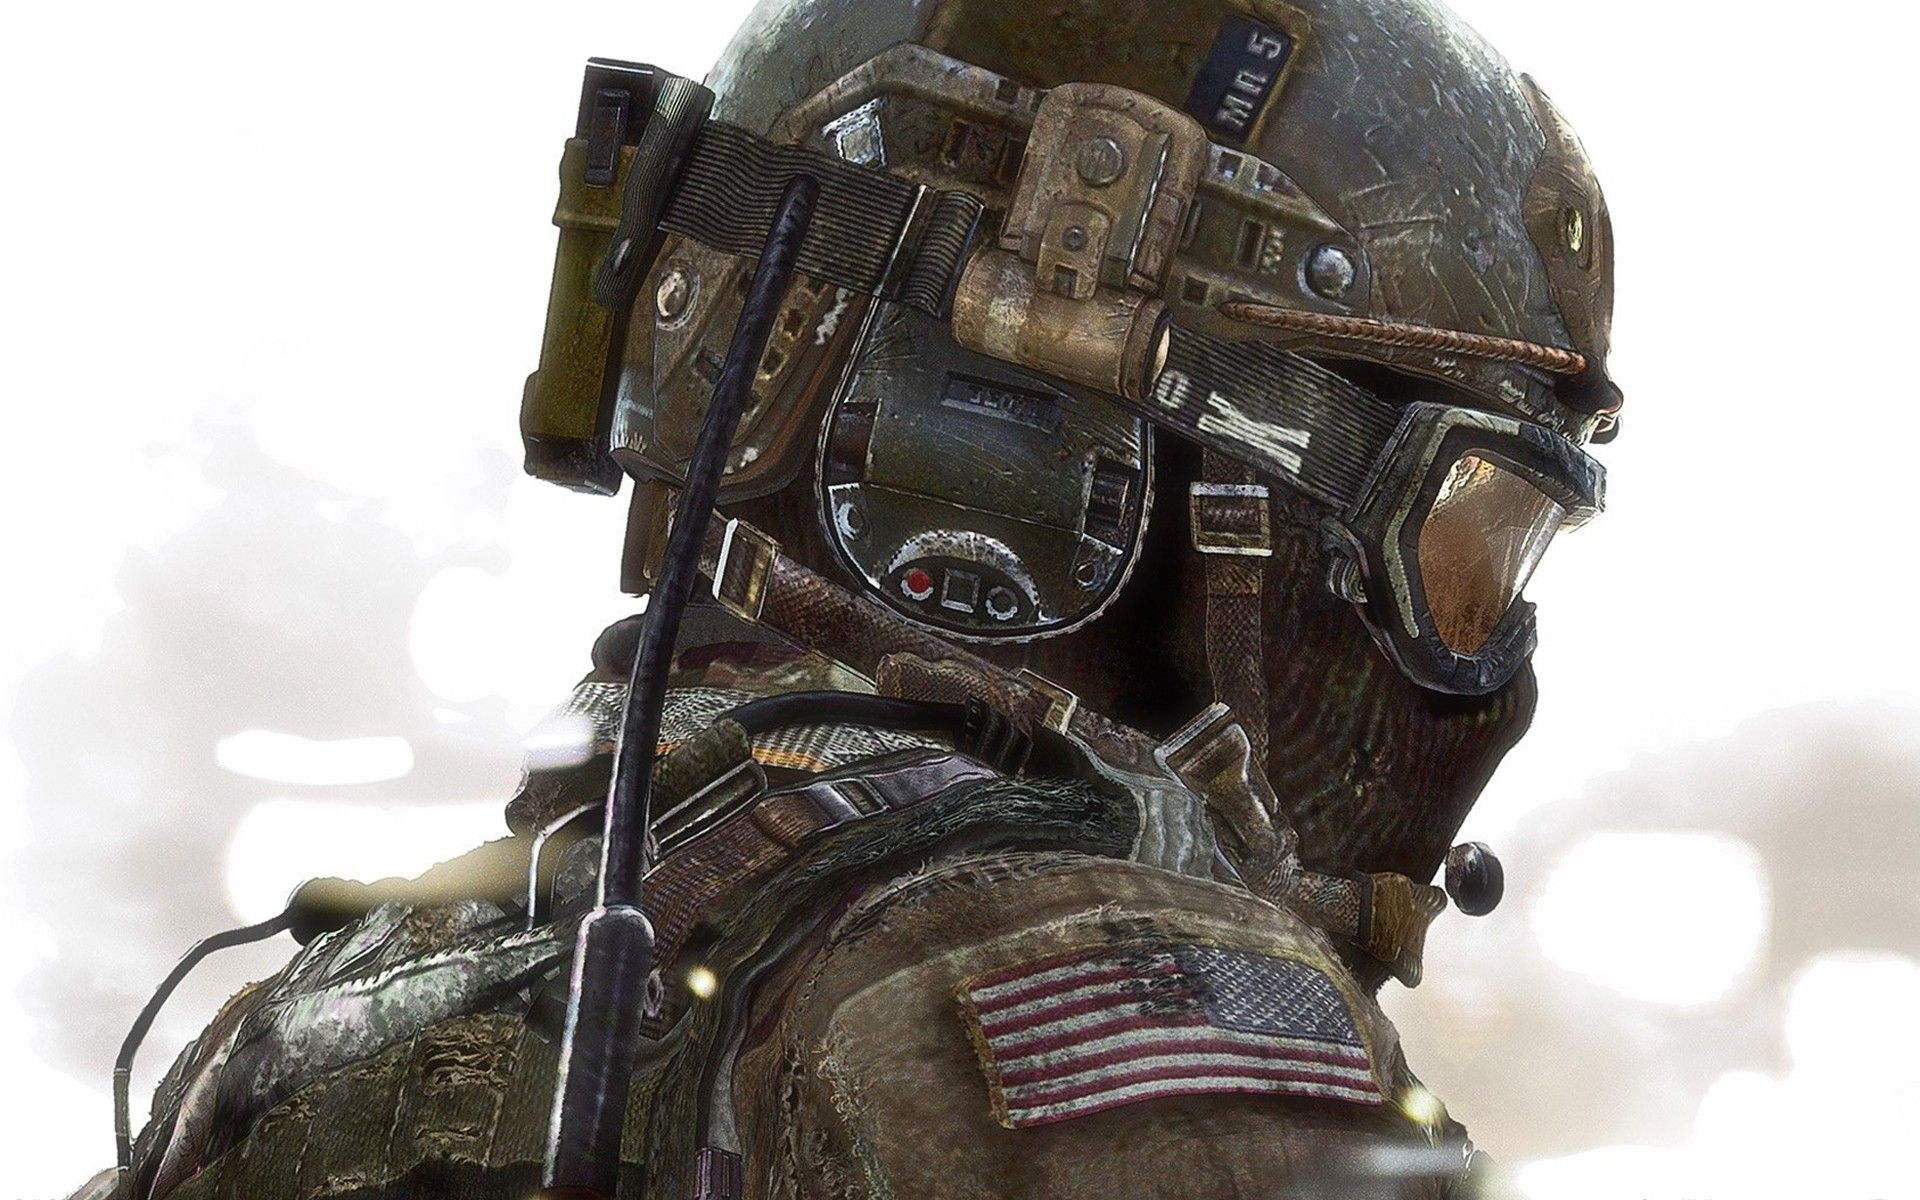 call of duty modern warfare hd wallpapers backgrounds | wallpapers